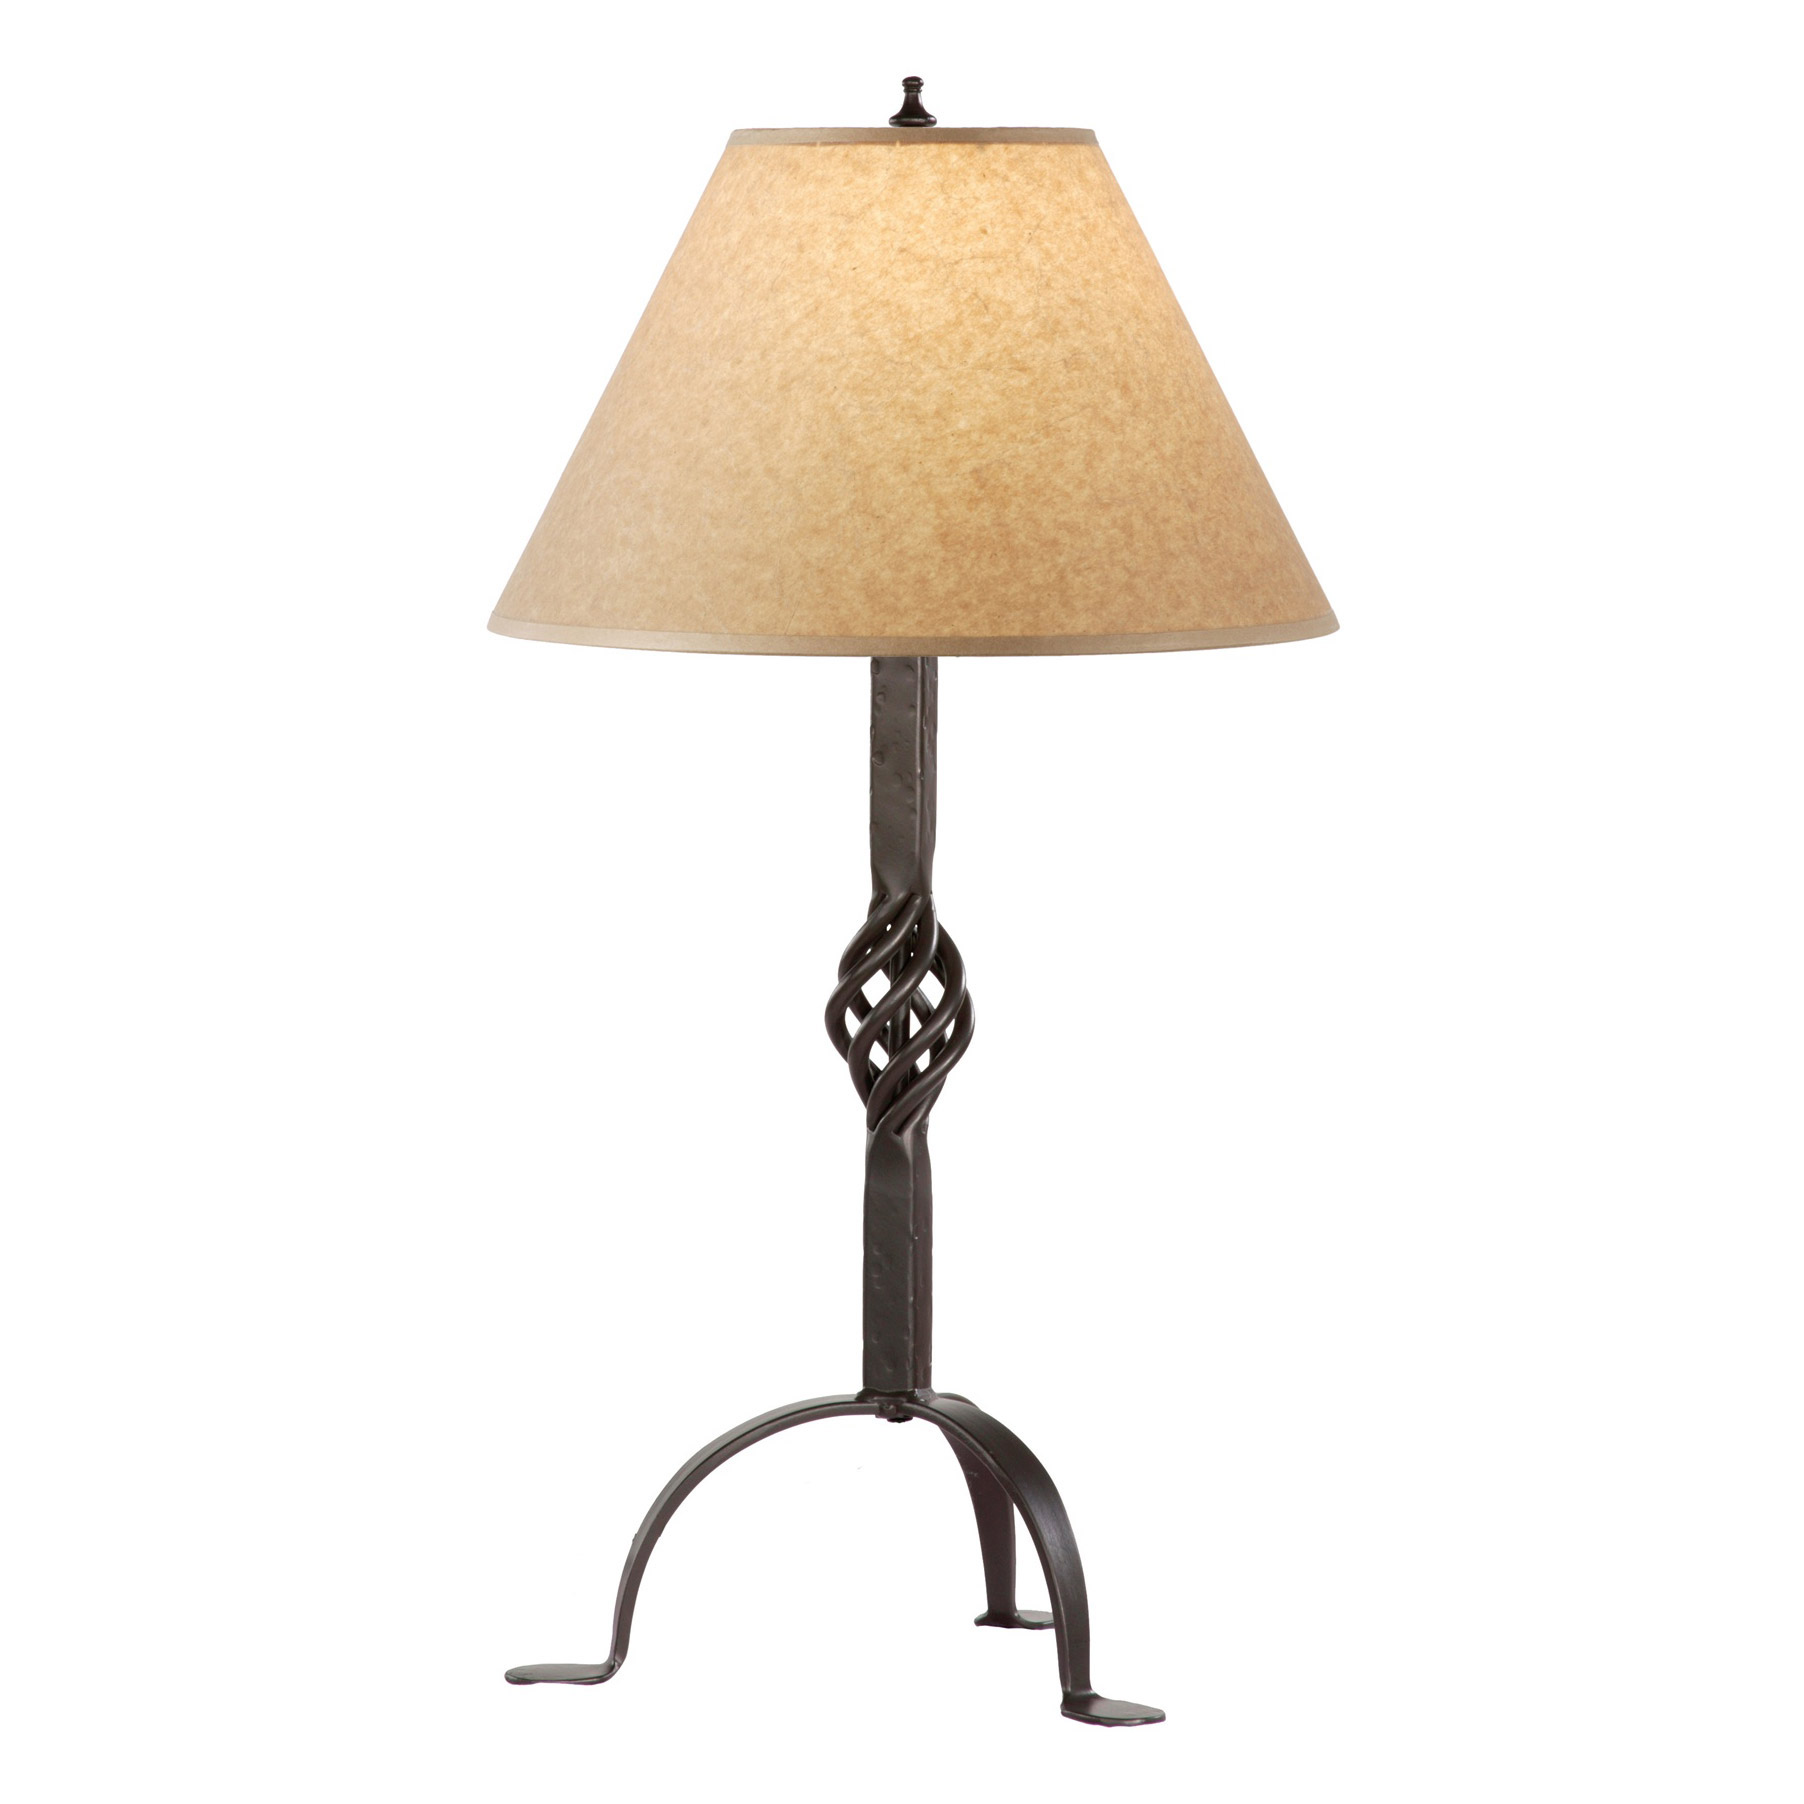 hand forged basketweave table lamp by stone county ironworks. Black Bedroom Furniture Sets. Home Design Ideas